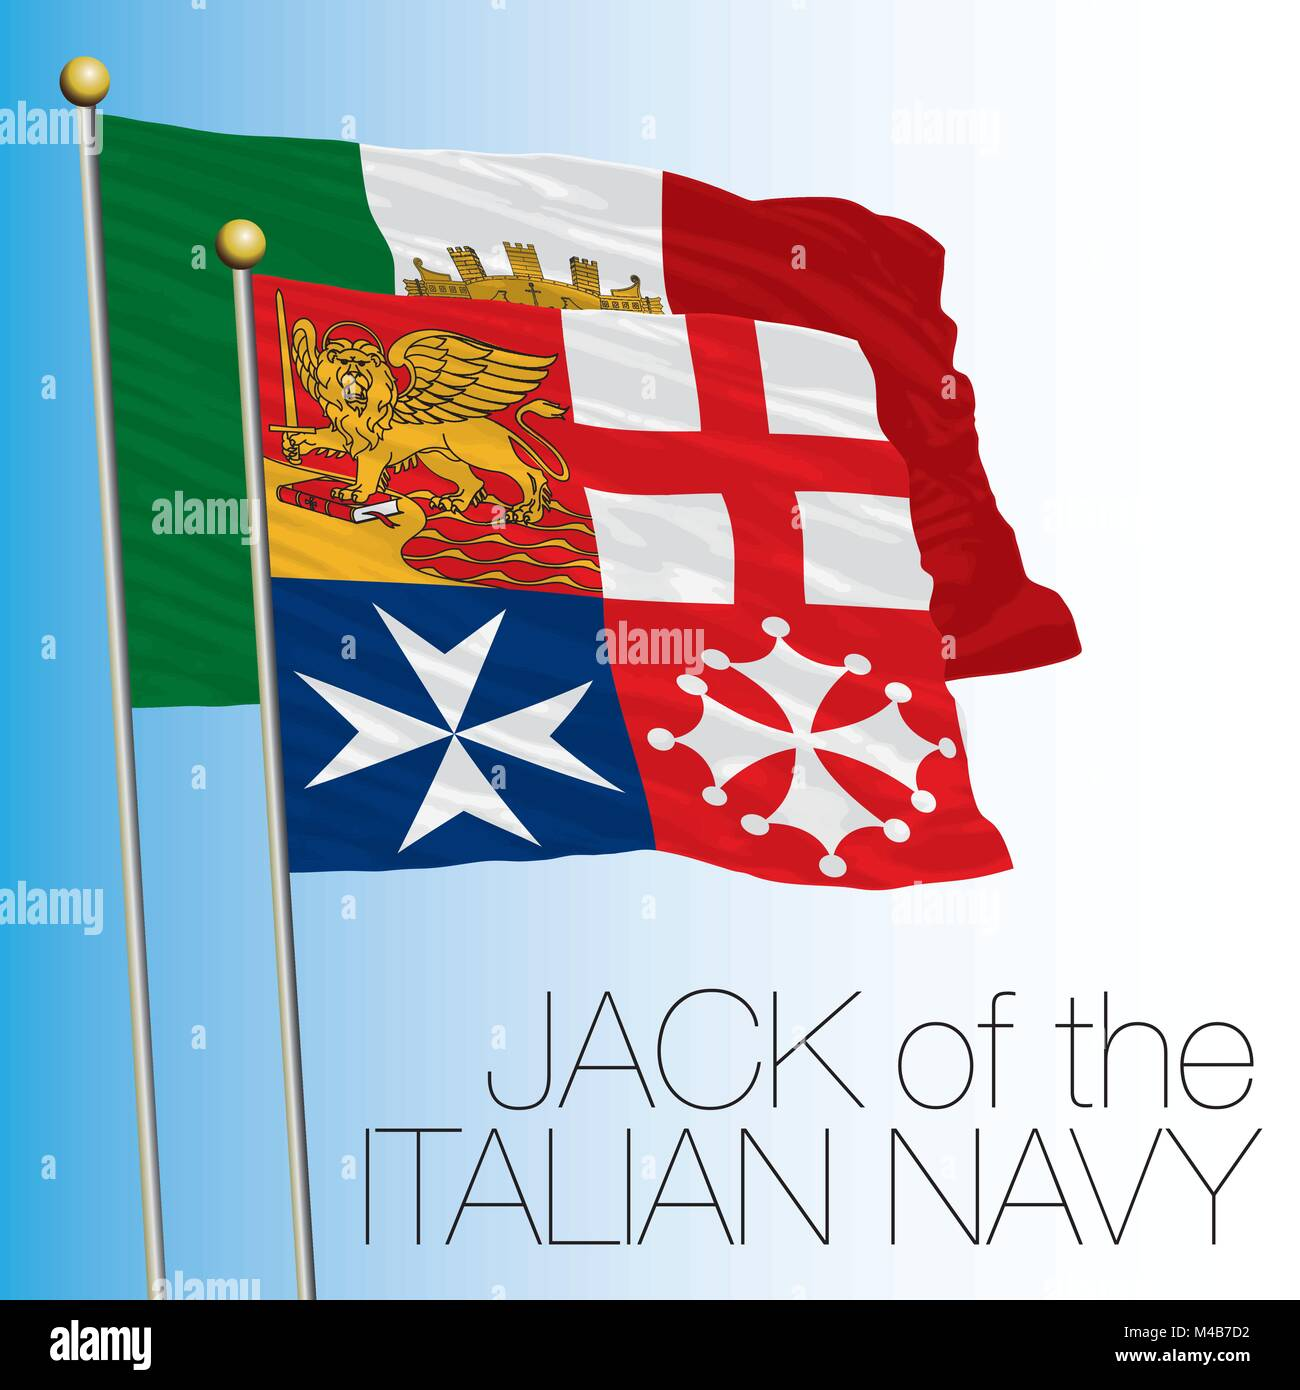 Italian Navy Jack flag, Italian Republic, Italy, European Union - Stock Vector